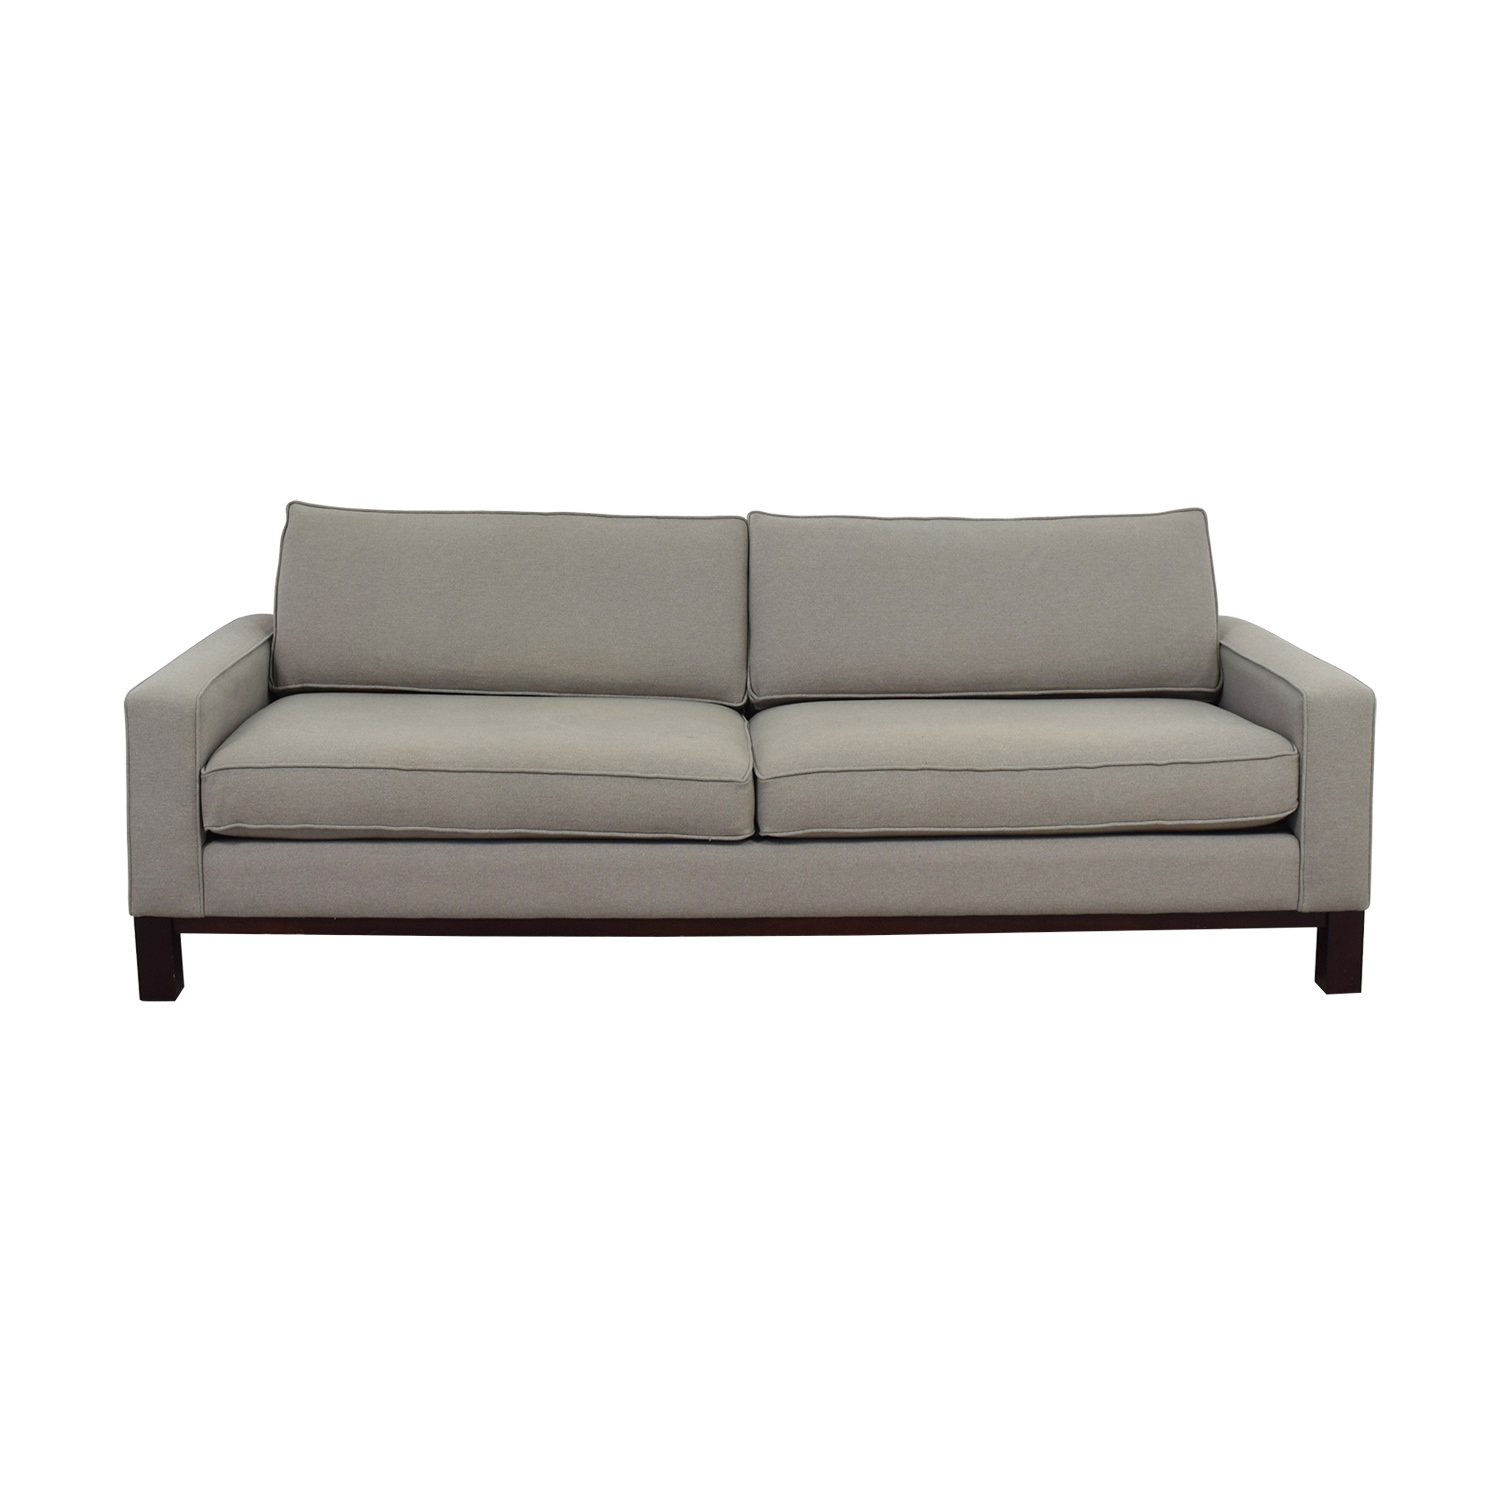 Room and Board Room & Board Grey Two-Cushion Sofa dimensions